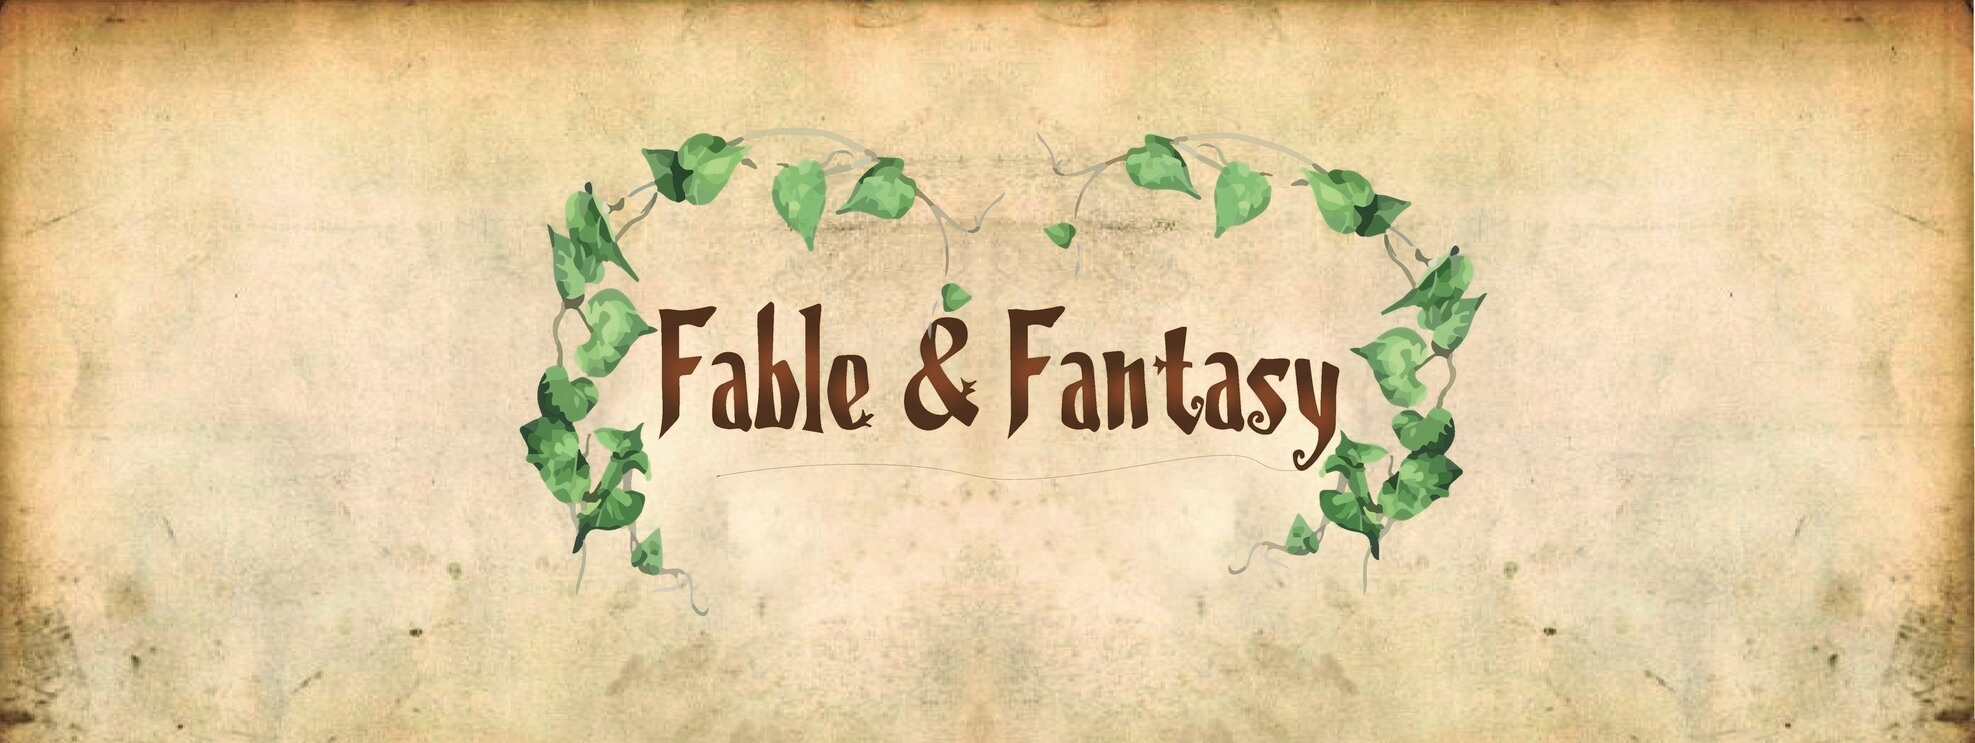 banner fable fantasy